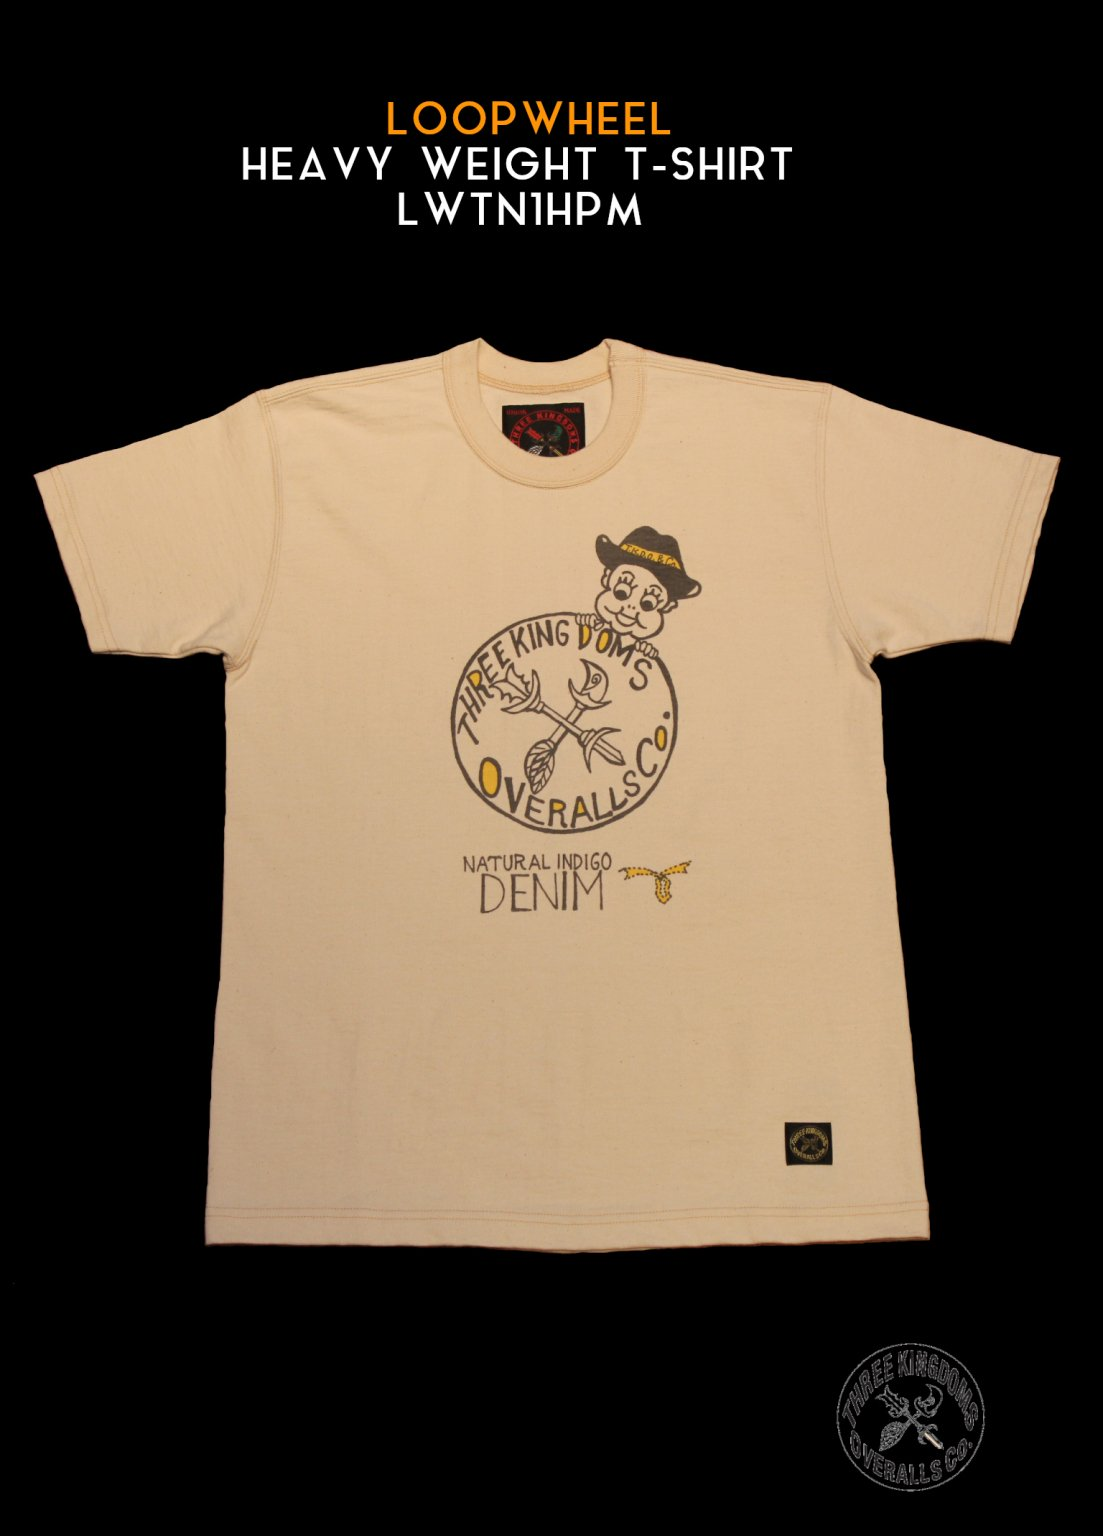 LWTN1HPM LOOPWHEEL HEAVY WEIGHT T-Shirt(Natural White)<img class='new_mark_img2' src='https://img.shop-pro.jp/img/new/icons14.gif' style='border:none;display:inline;margin:0px;padding:0px;width:auto;' />